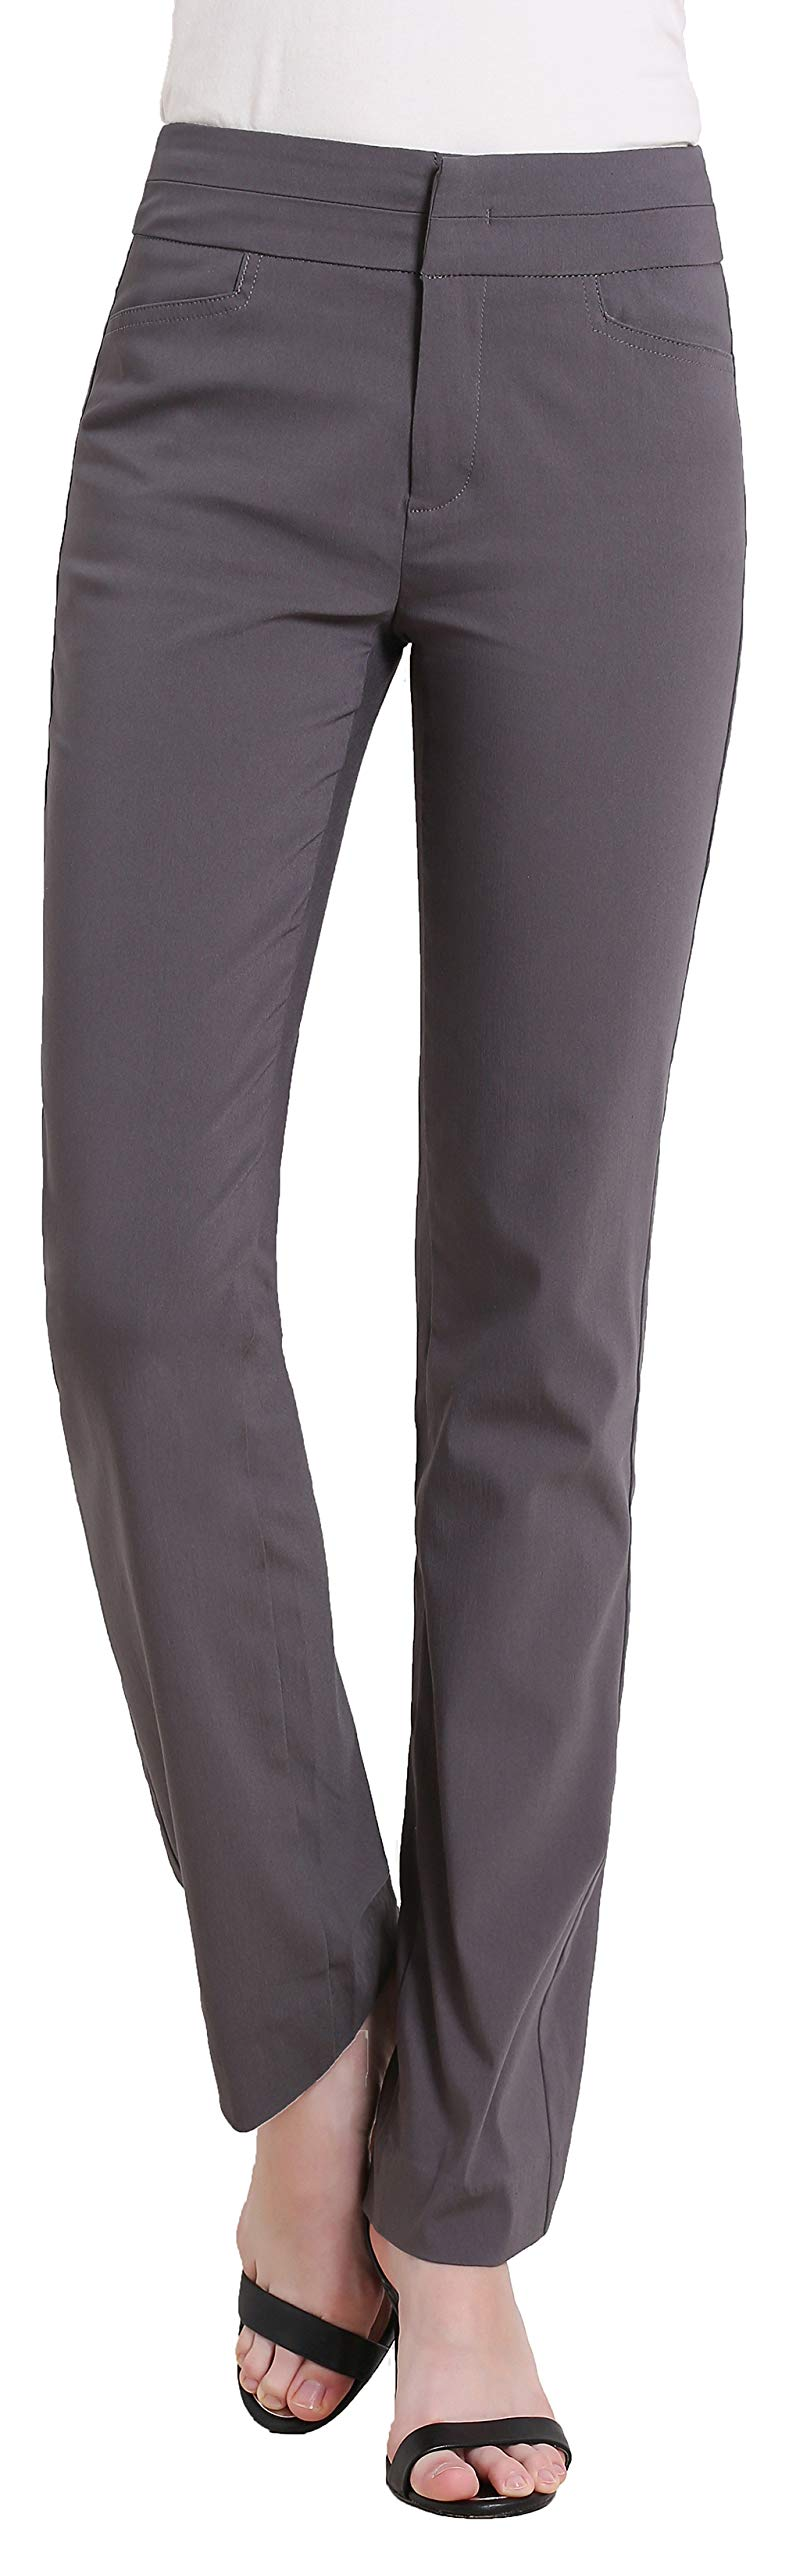 MOVING DEVICE Women's Dress Pant with Side Pockets Straight Leg Pant Wear to Work Zipper Closure